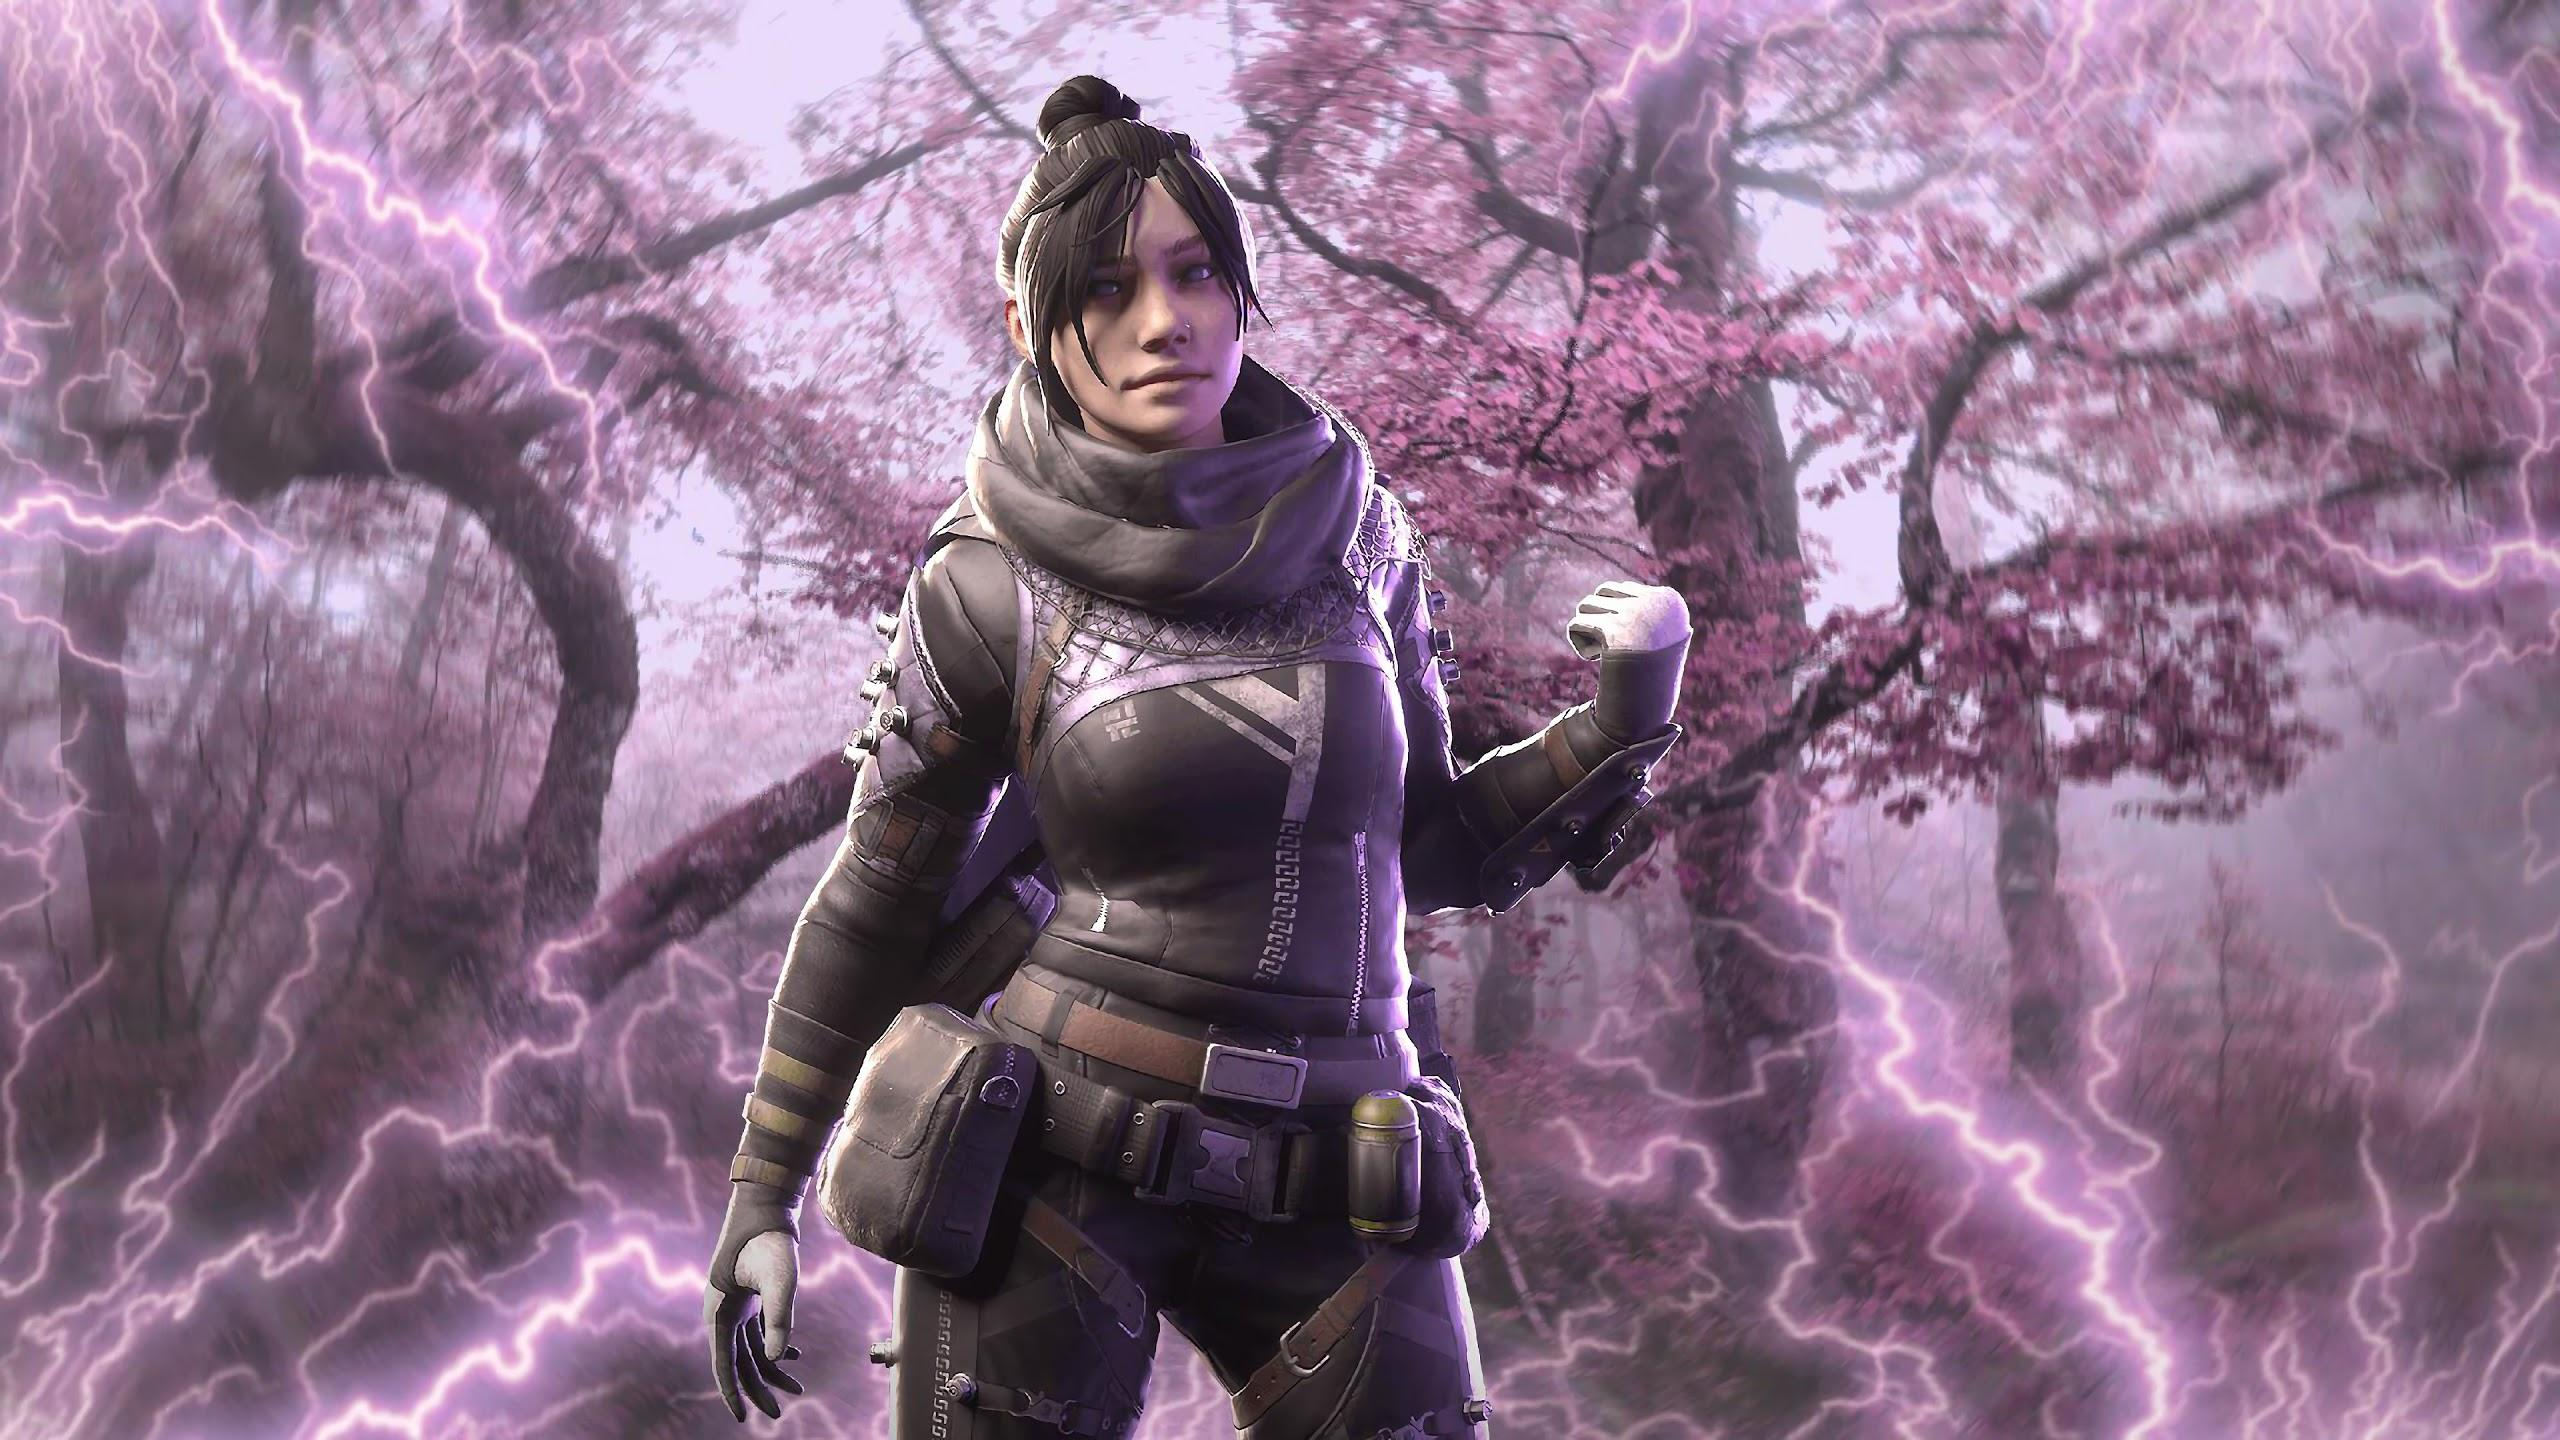 Apex Legends Wraith HD Wallpapers - Wallpaper Cave